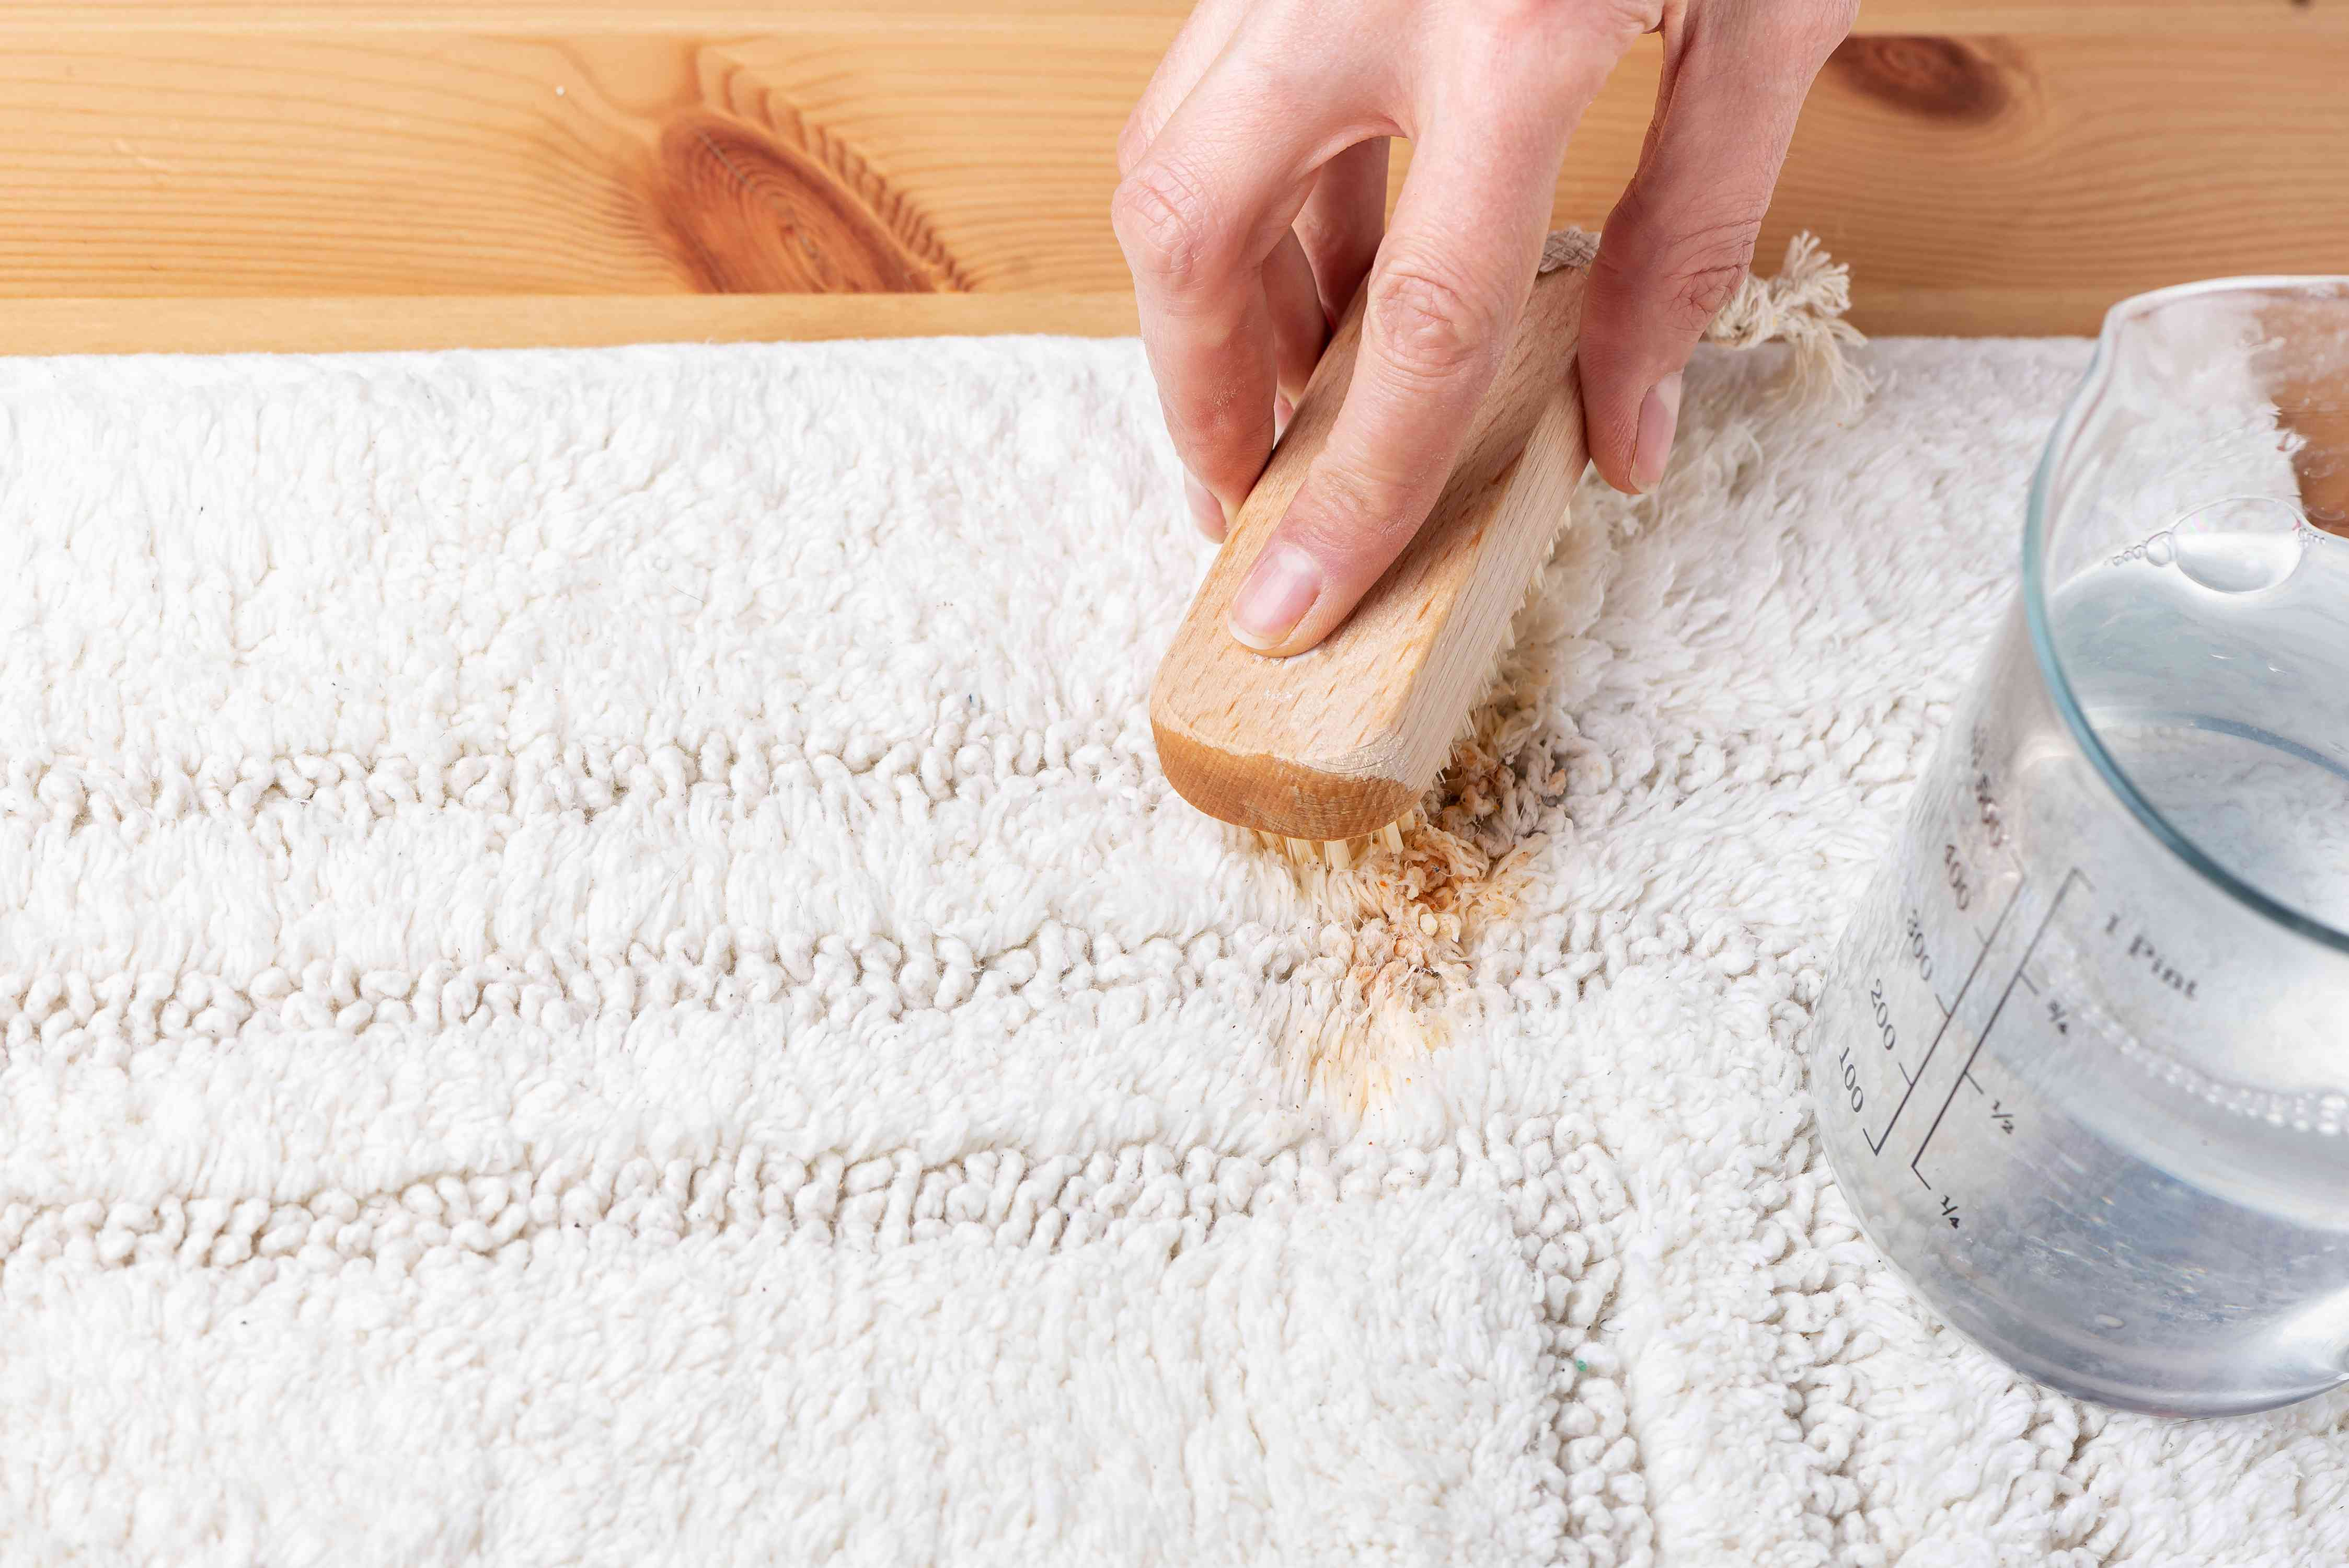 treating the stain with cleaning solution